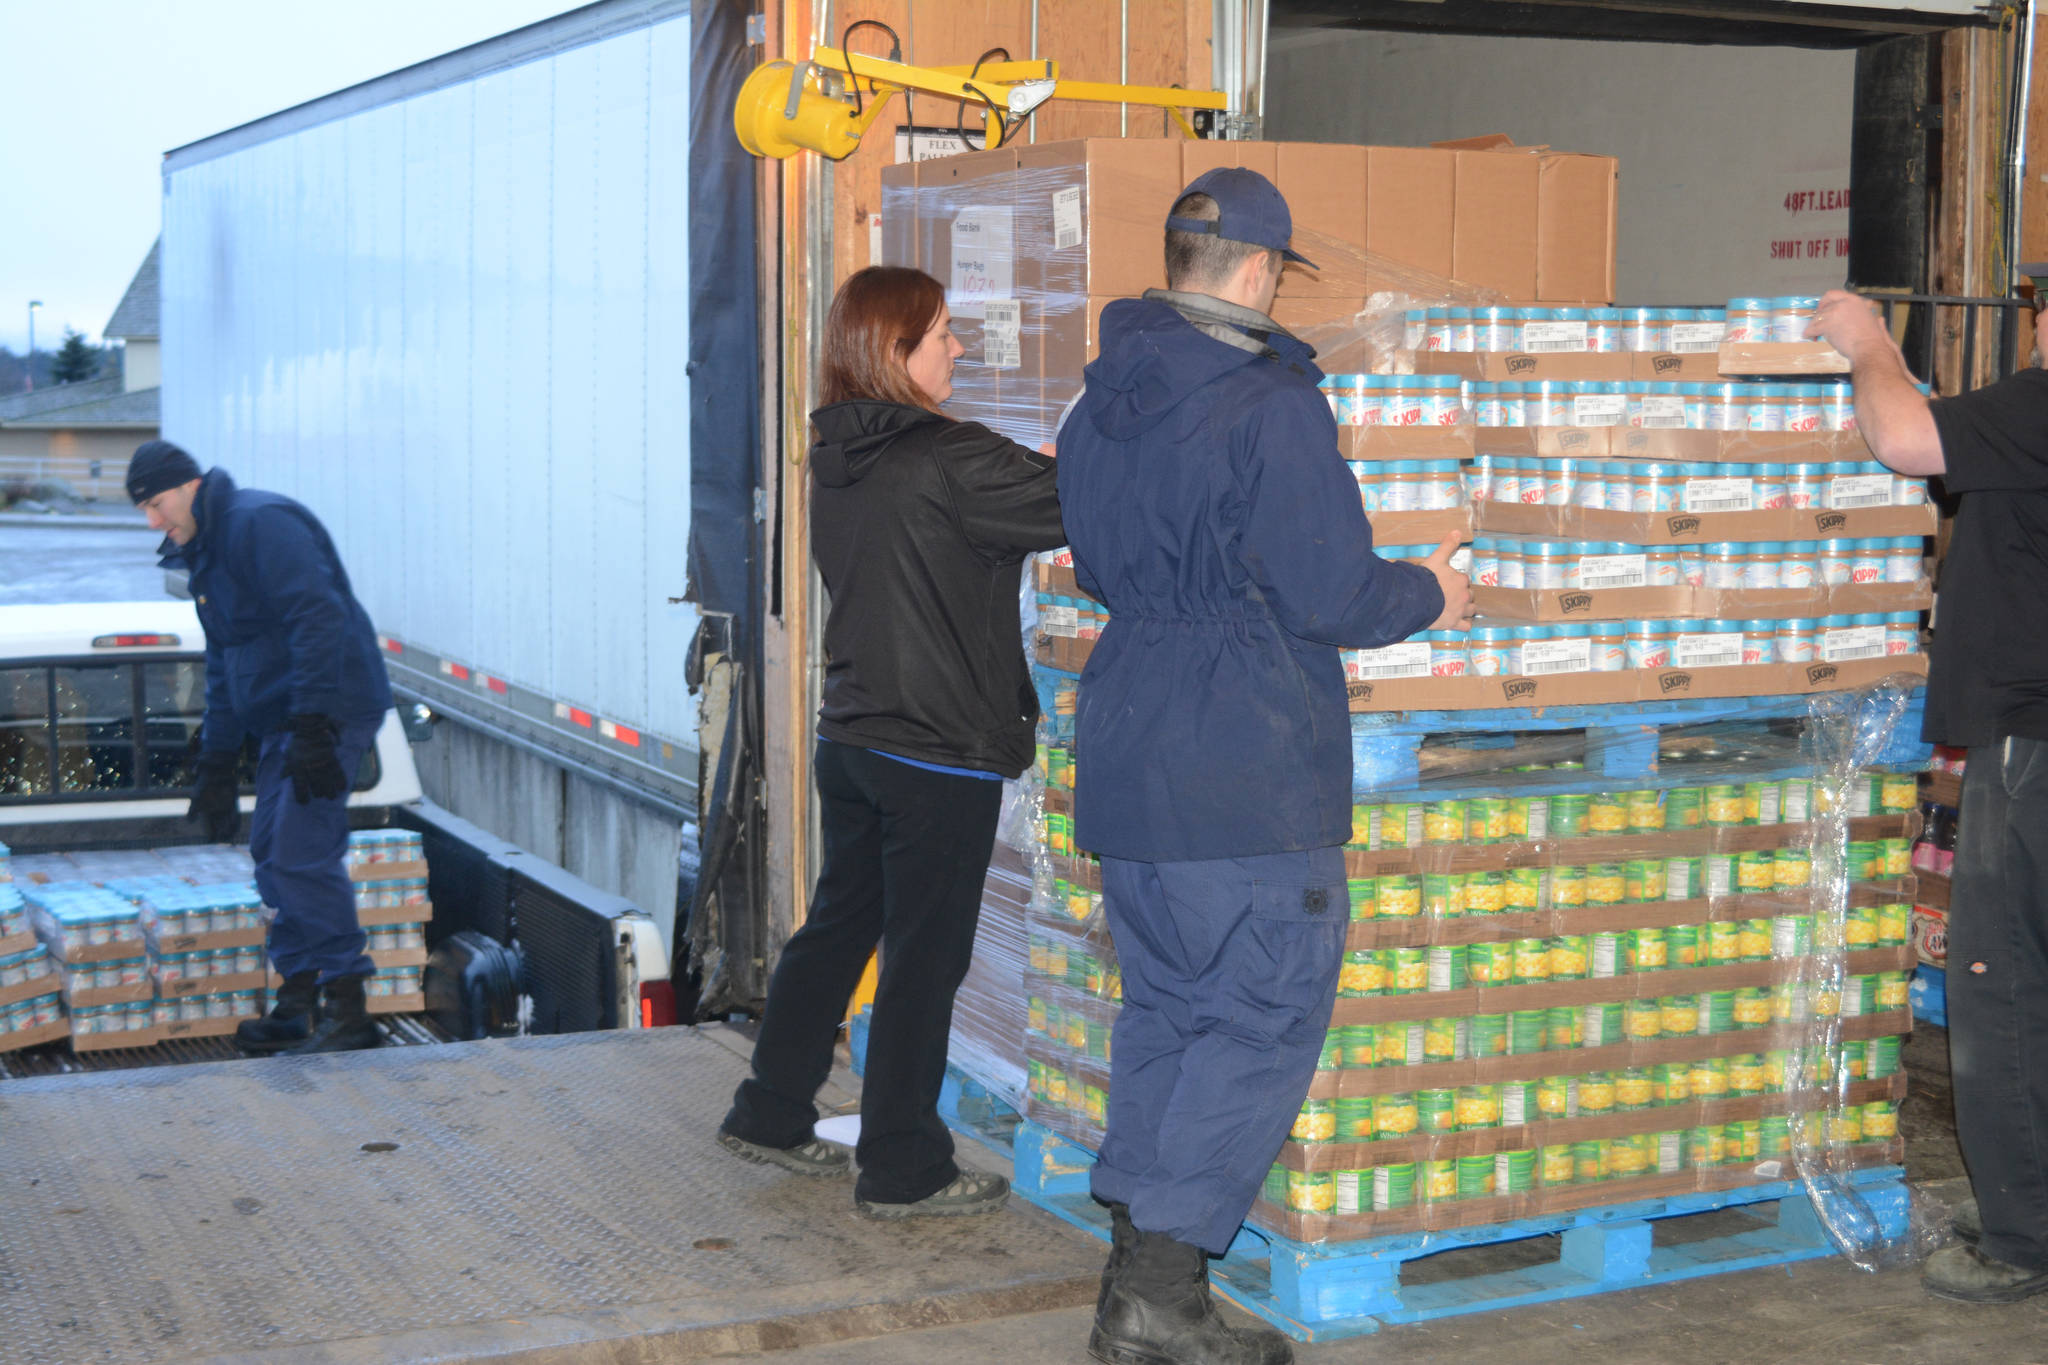 """U.S. Coast Guard Cutter Naushon crew member Jordan Dorchin, right, helps Homer Safeway assistant store manager Tiffany Biggs, center, load Hunger Bag food onto a truck as his fellow crew member James Bannon, left, packs the truck Tuesday, Dec. 5, 2017. The Coast Guard members delivered food to the Homer Community Food Pantry Tuesday morning that had been purchased by Safeway customers as part of its Hunger Bag project. Store Manager Bob Malone said about 1,300 bags at $10 each had been sold at the Homer store since Nov. 1. Through a national program, Safeway sells the bags and donates food to charities chosen by local stores. Pallets of food are organized at the Anchorage warehouse and sent to Homer. """"This year, from what I understand, the need is more than normal,"""" Malone said."""